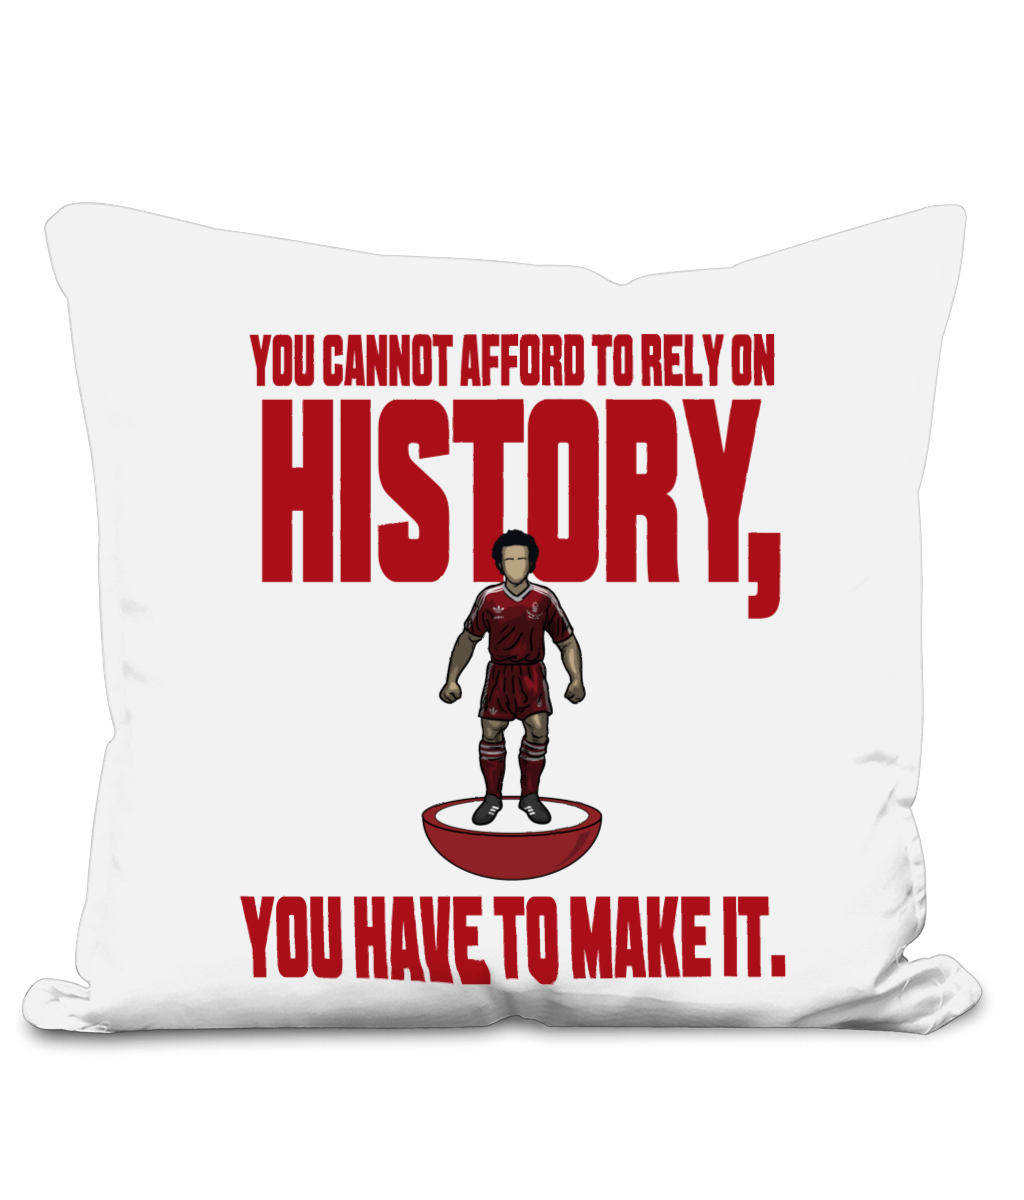 Make History Cushion